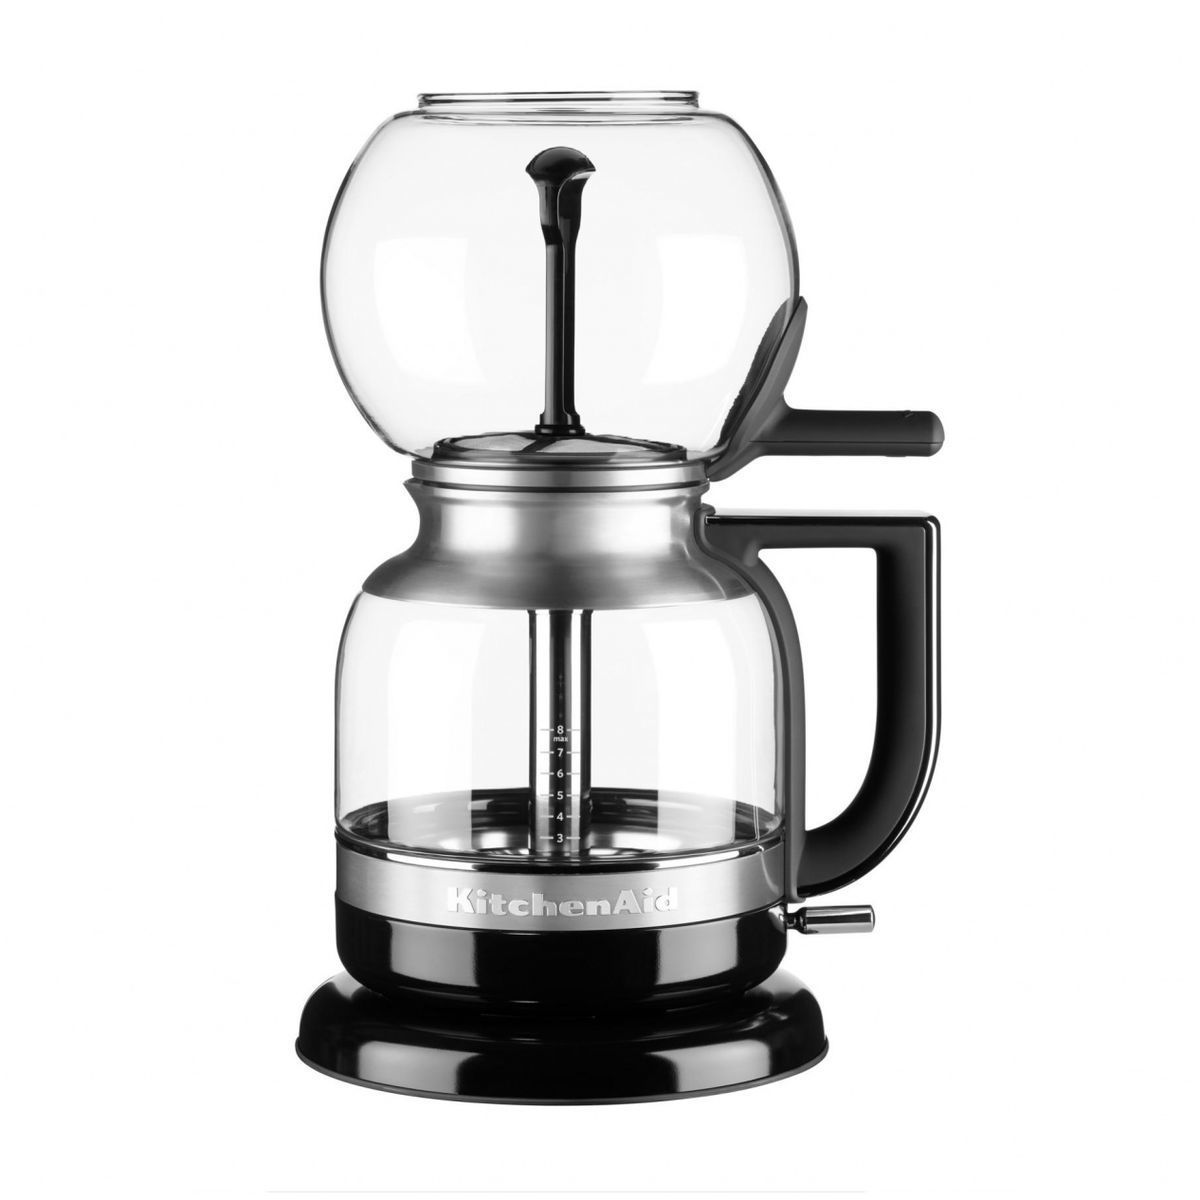 Kitchenaid Coffee Maker Cleaner : Artisan 5KCM0812OB Siphon Coffee Maker KitchenAid AmbienteDirect.com